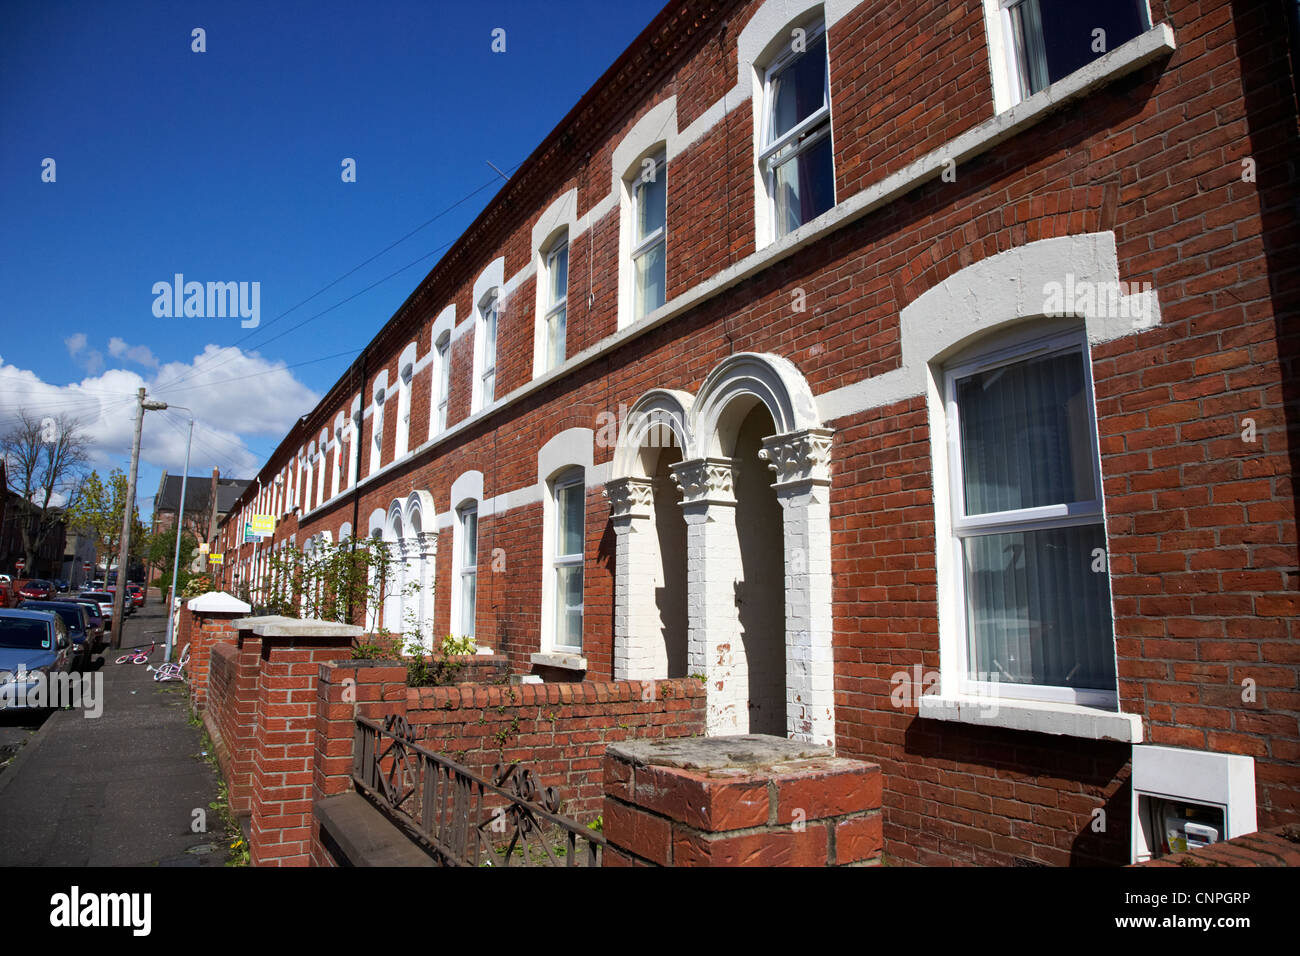 row of terraced houses in a student residential area of Belfast Northern Ireland UK - Stock Image